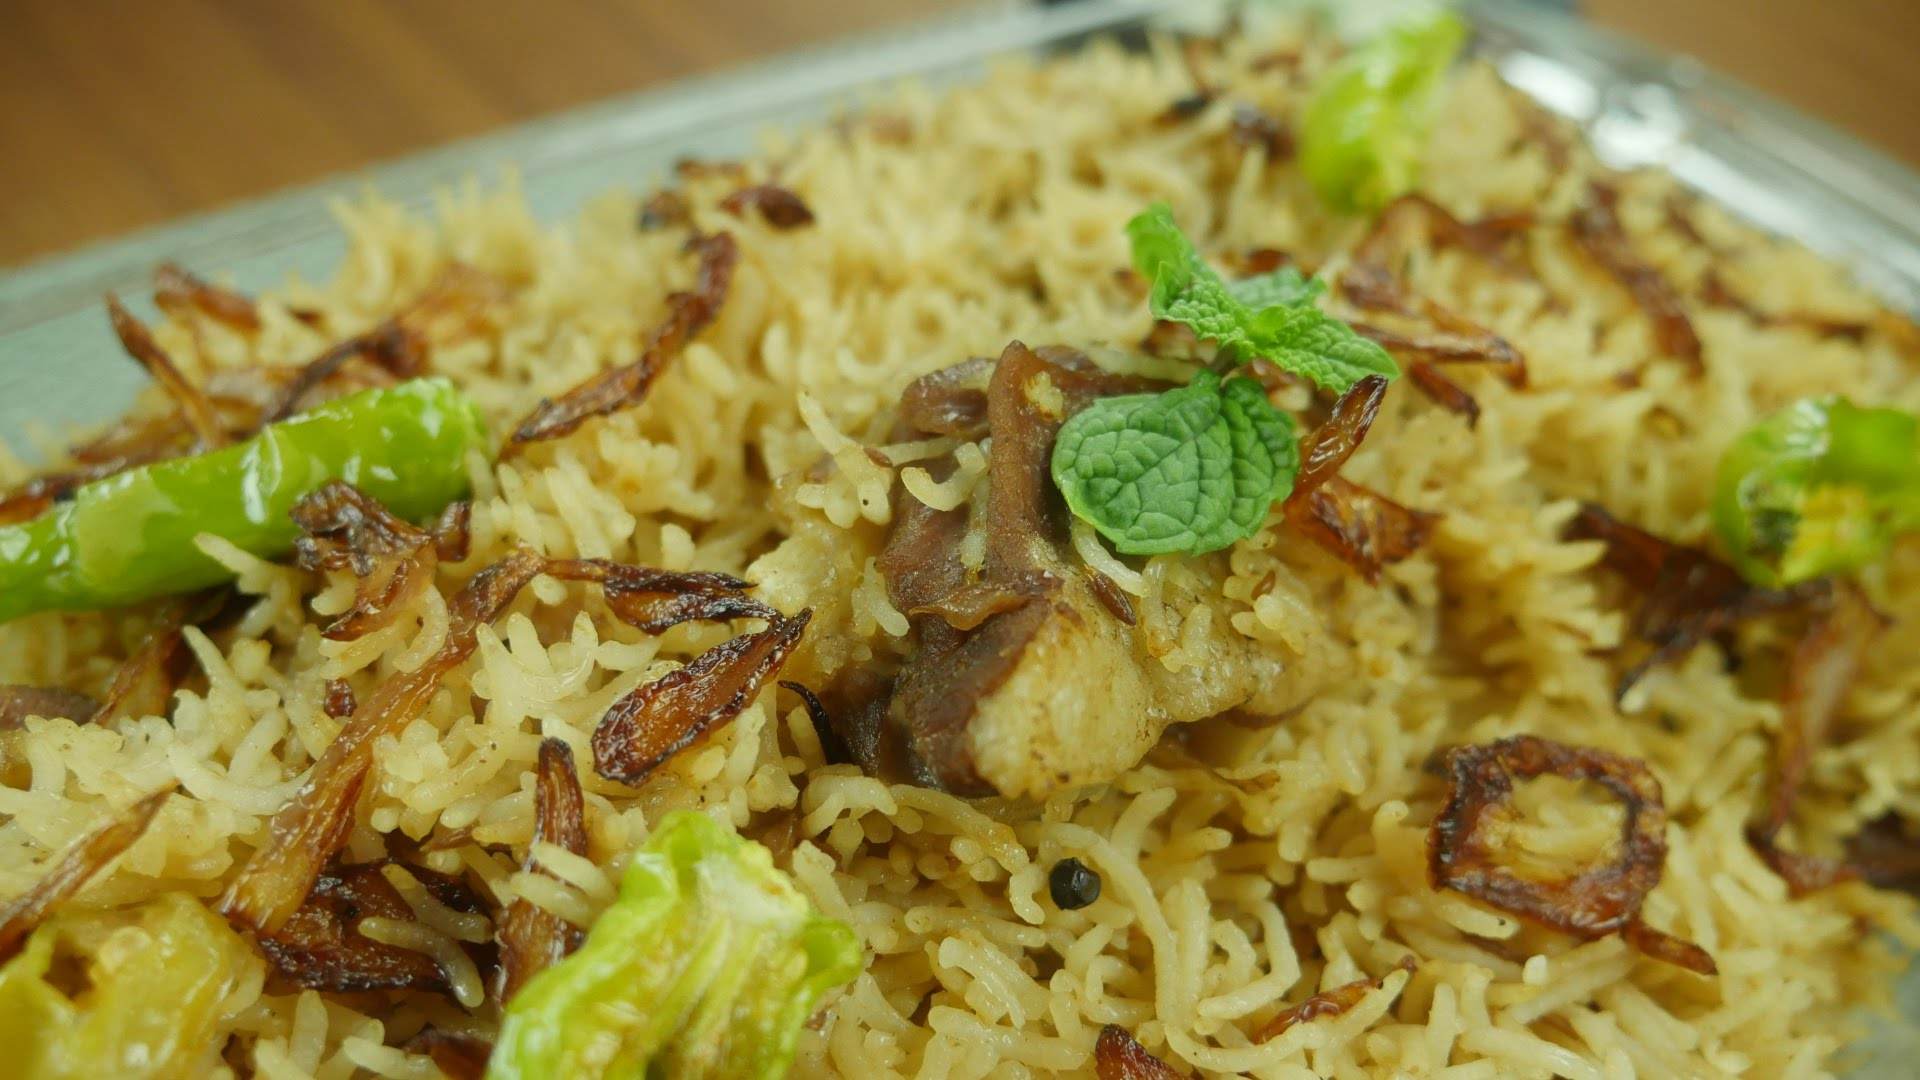 Mutton yakhni pulao Recipe